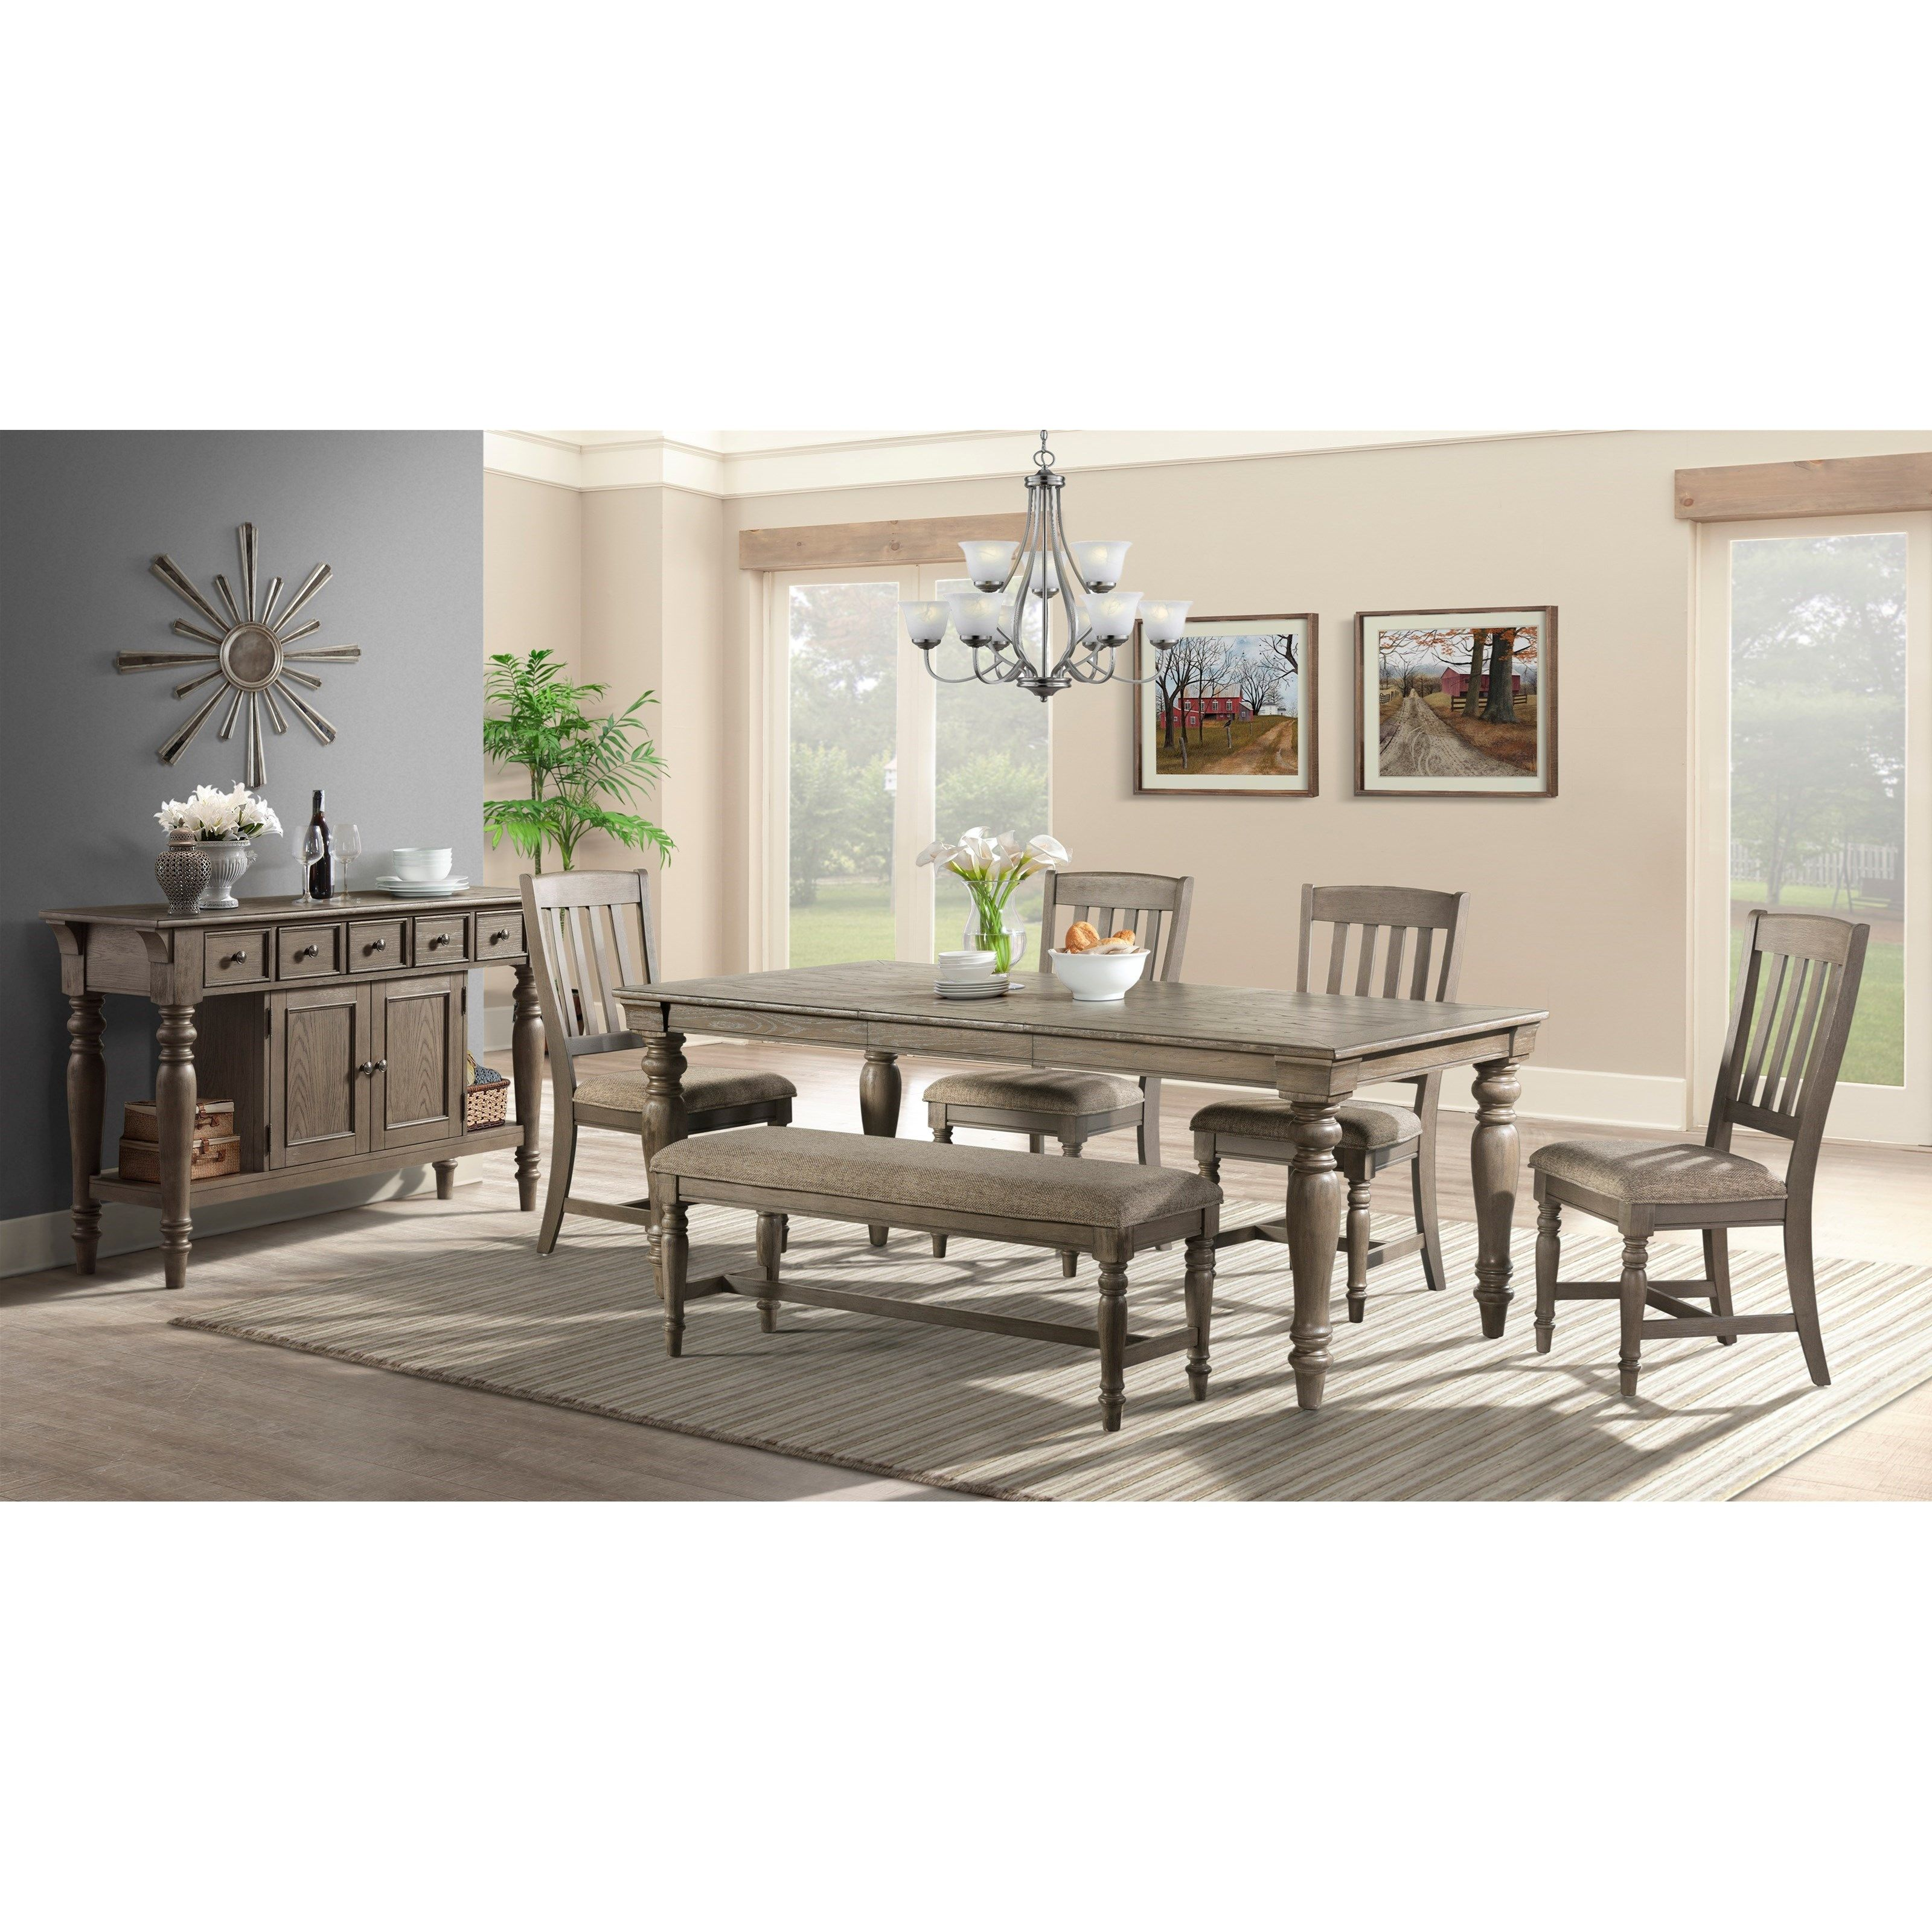 Balboa Park Formal Dining Group By Intercon At Story Lee Furniture In 2021 Dining Room Sets Formal Dining Tables Nook Dining Set